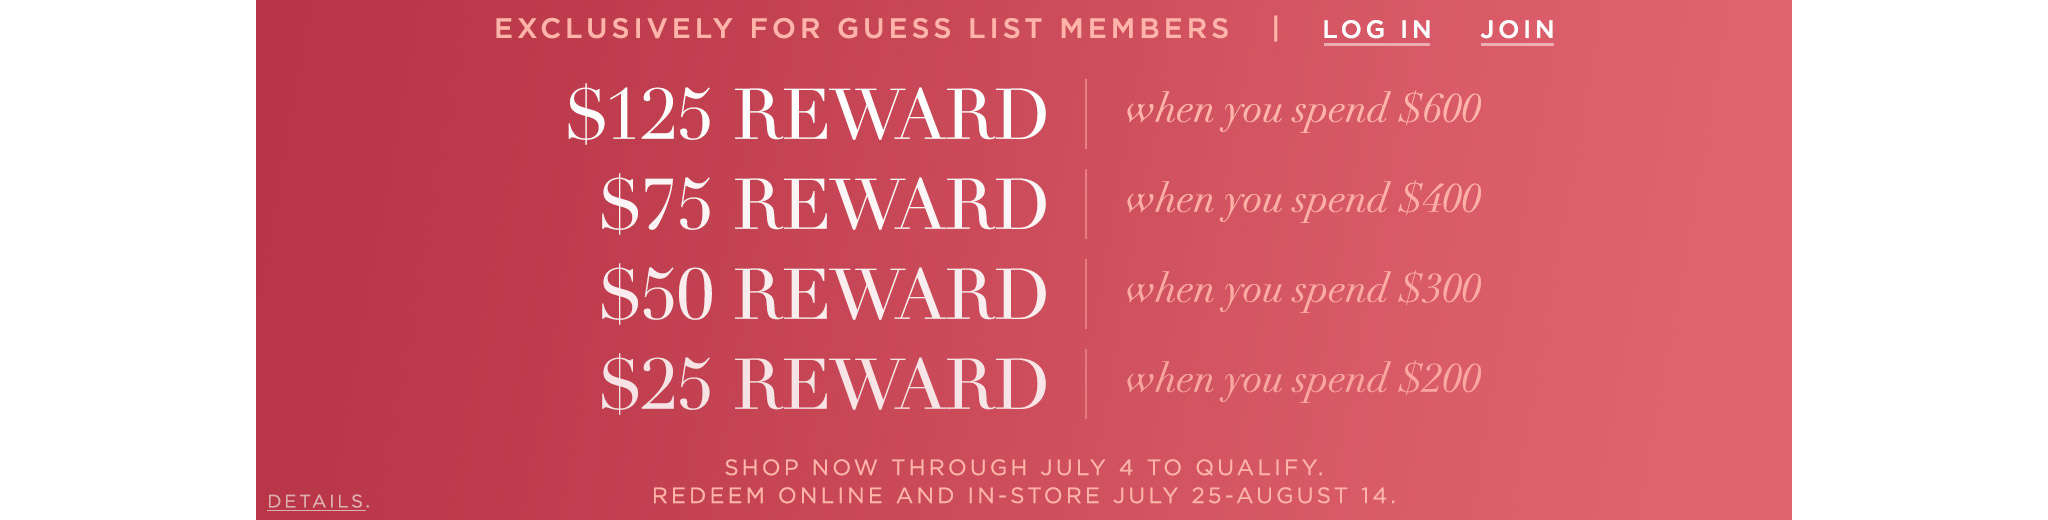 Guess List Exclusive Offer